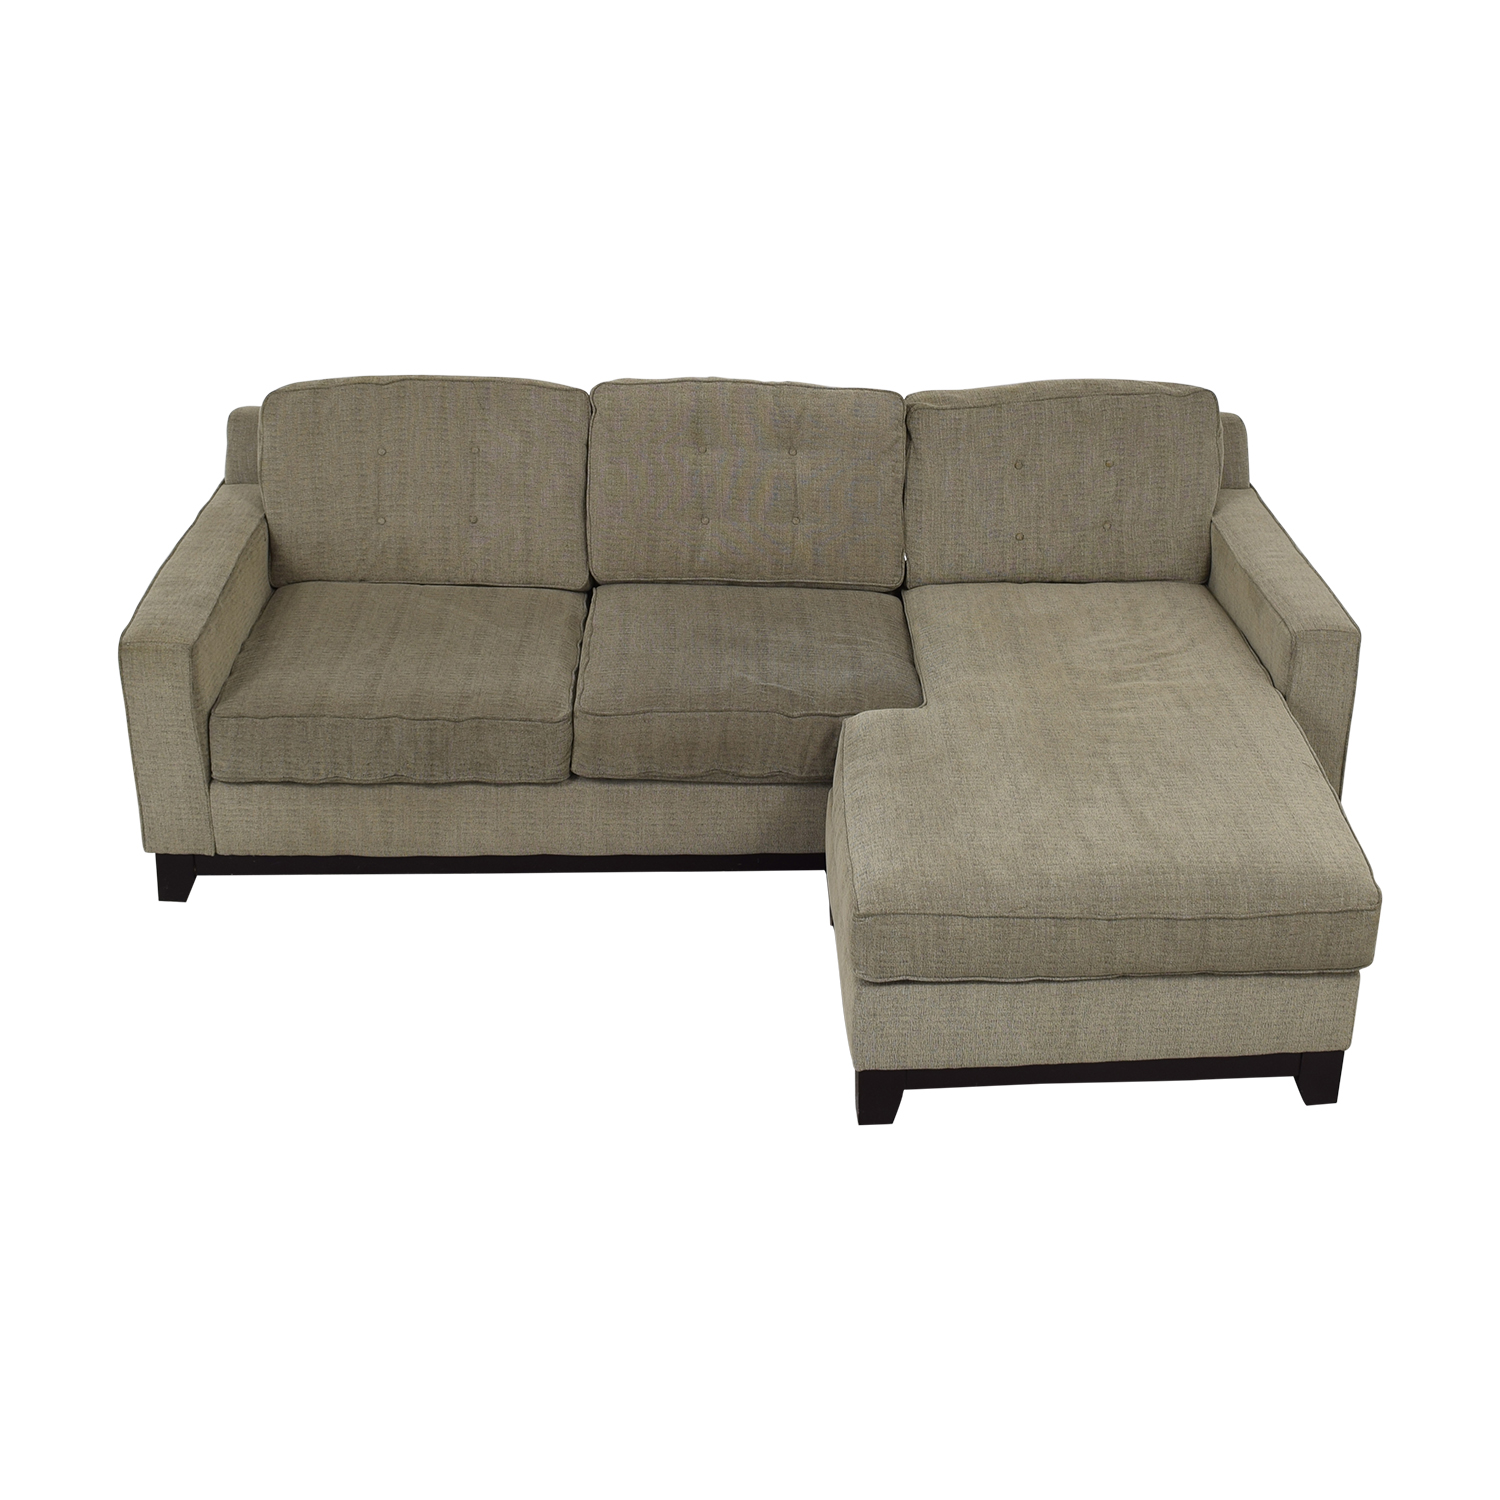 Macy's Grey Tufted Chaise Sectional / Sofas